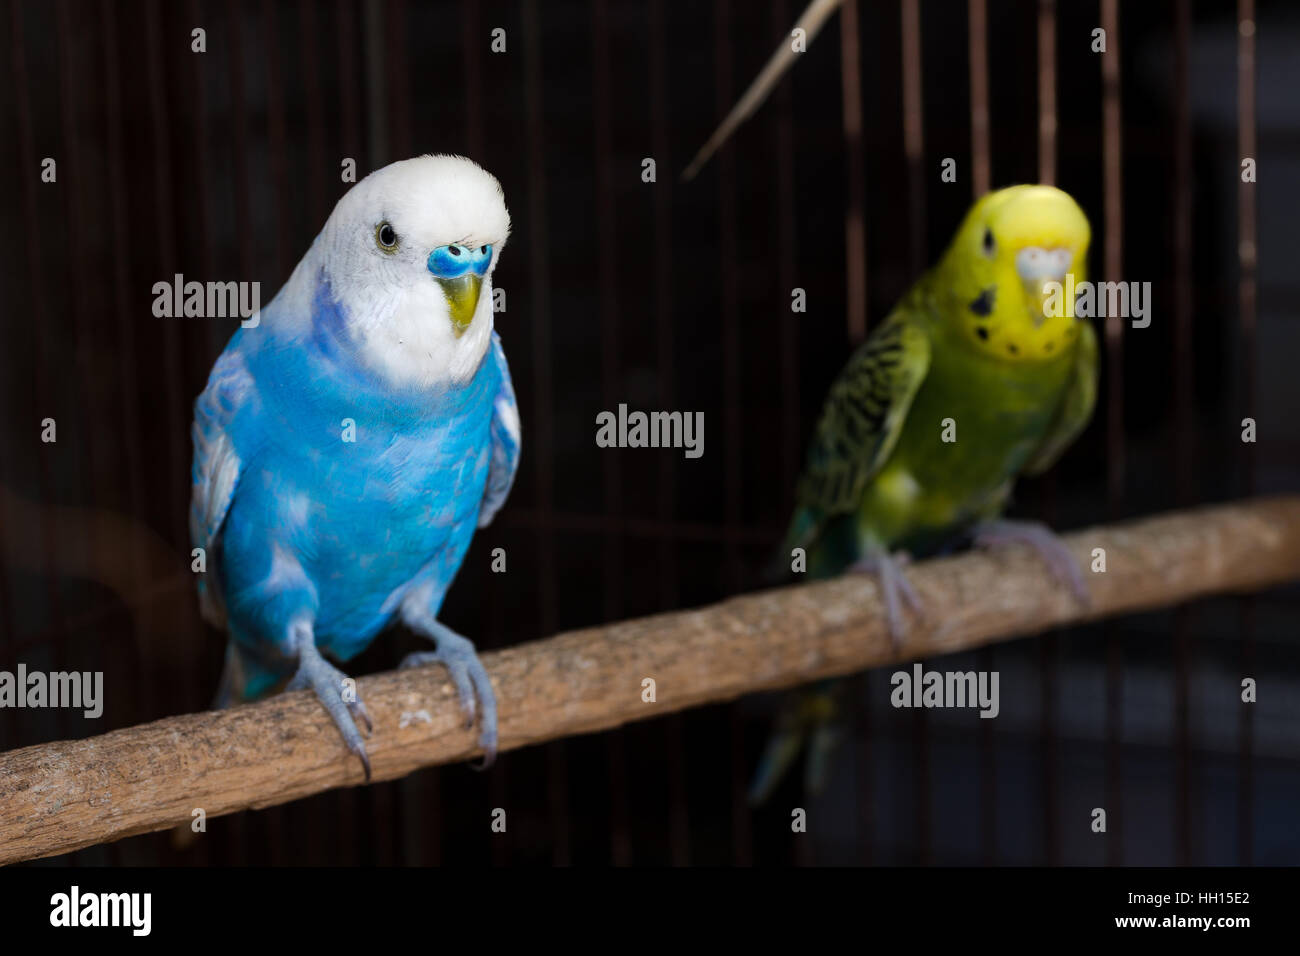 Yellow Budgie,  Budgerigar Birds in the cage - Stock Image